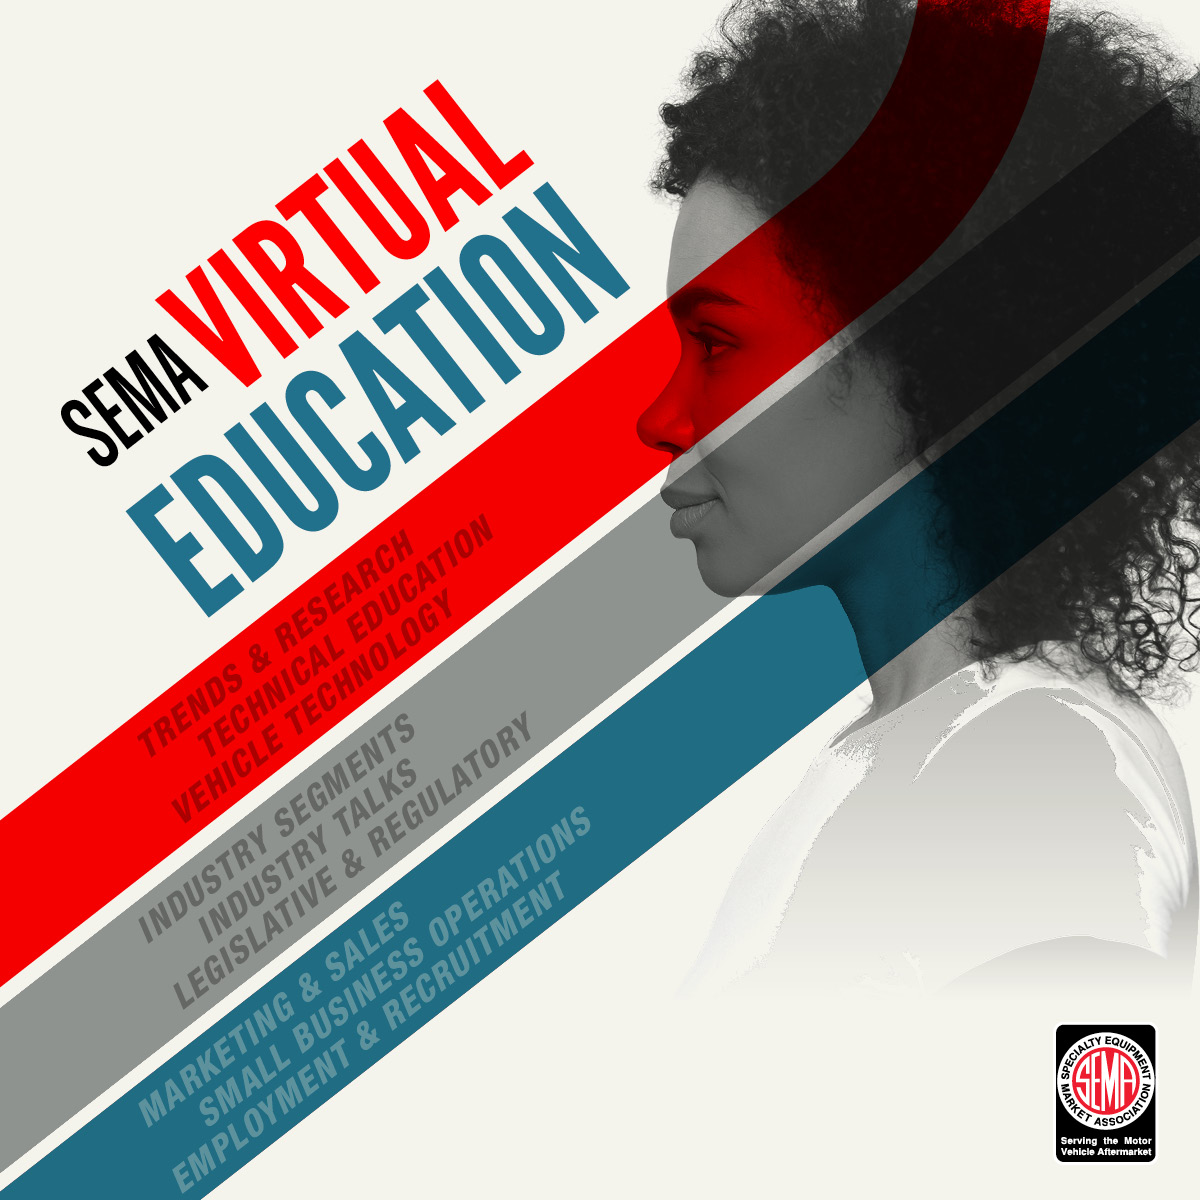 SEMA Virtual Education - How to Take Your Digital Marketing to the Next Level